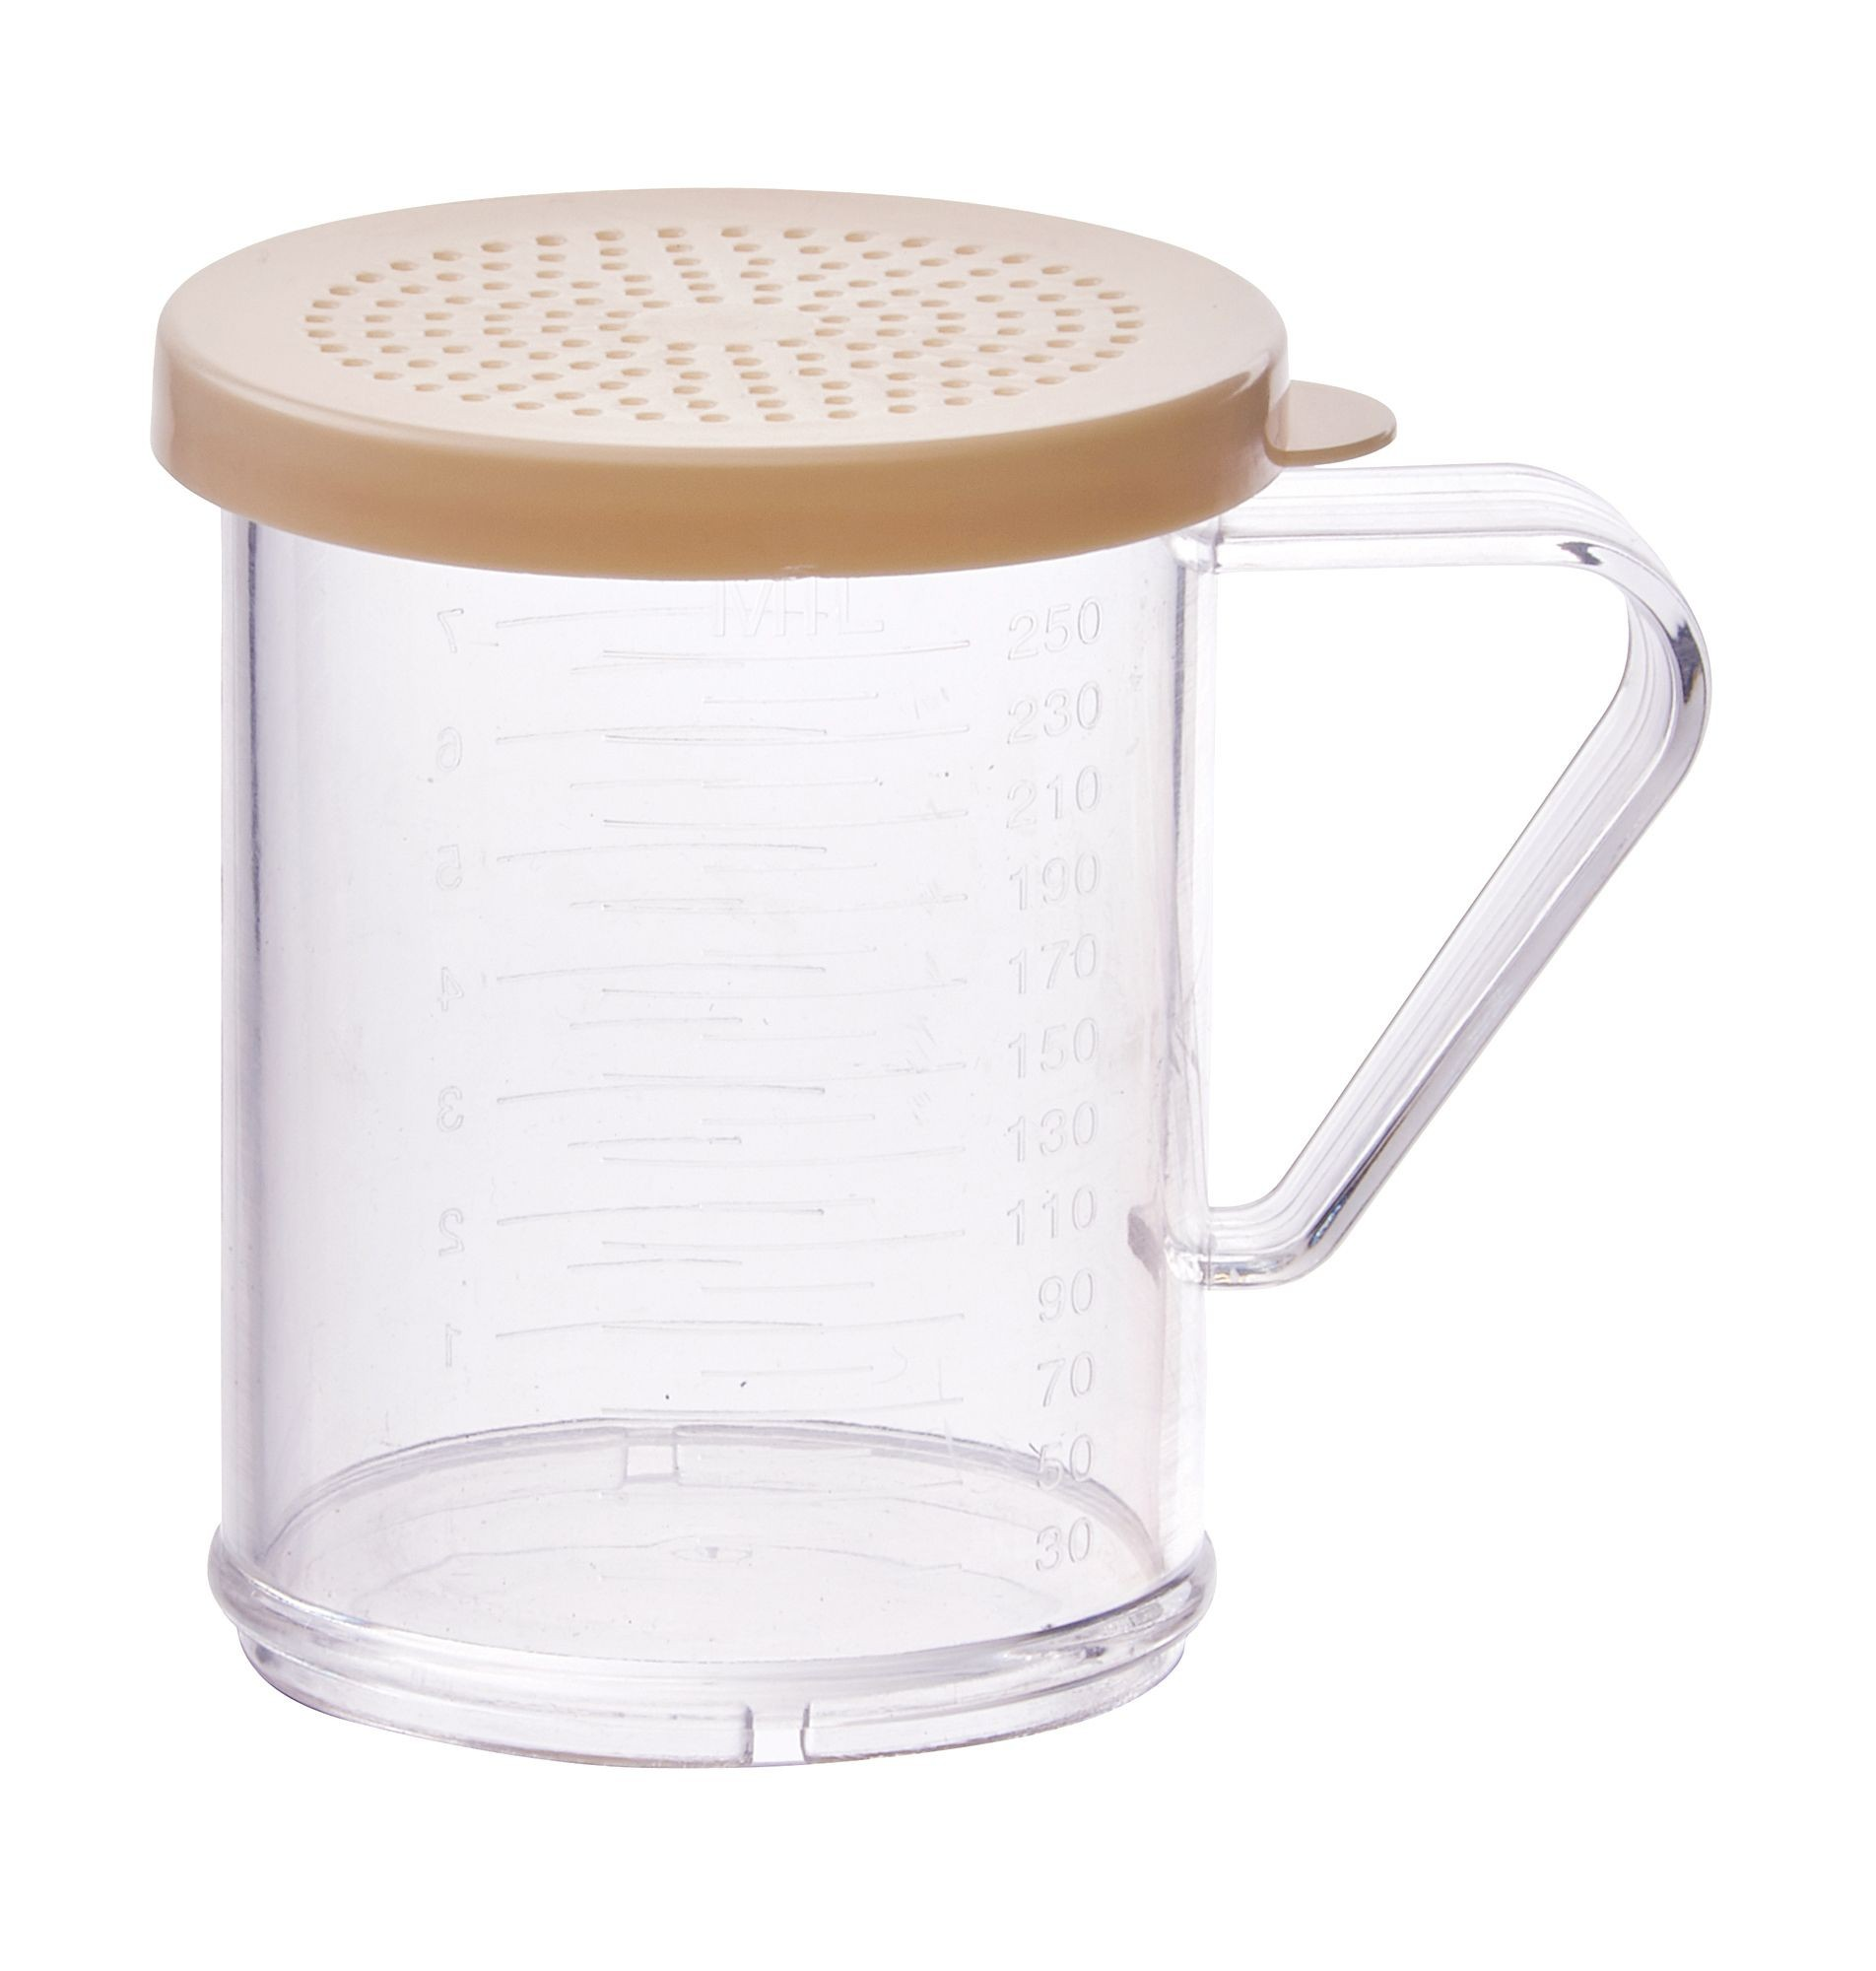 Winco PDG-10B 10 oz. Polycarbonate Dredge with Beige Snap-On Lid